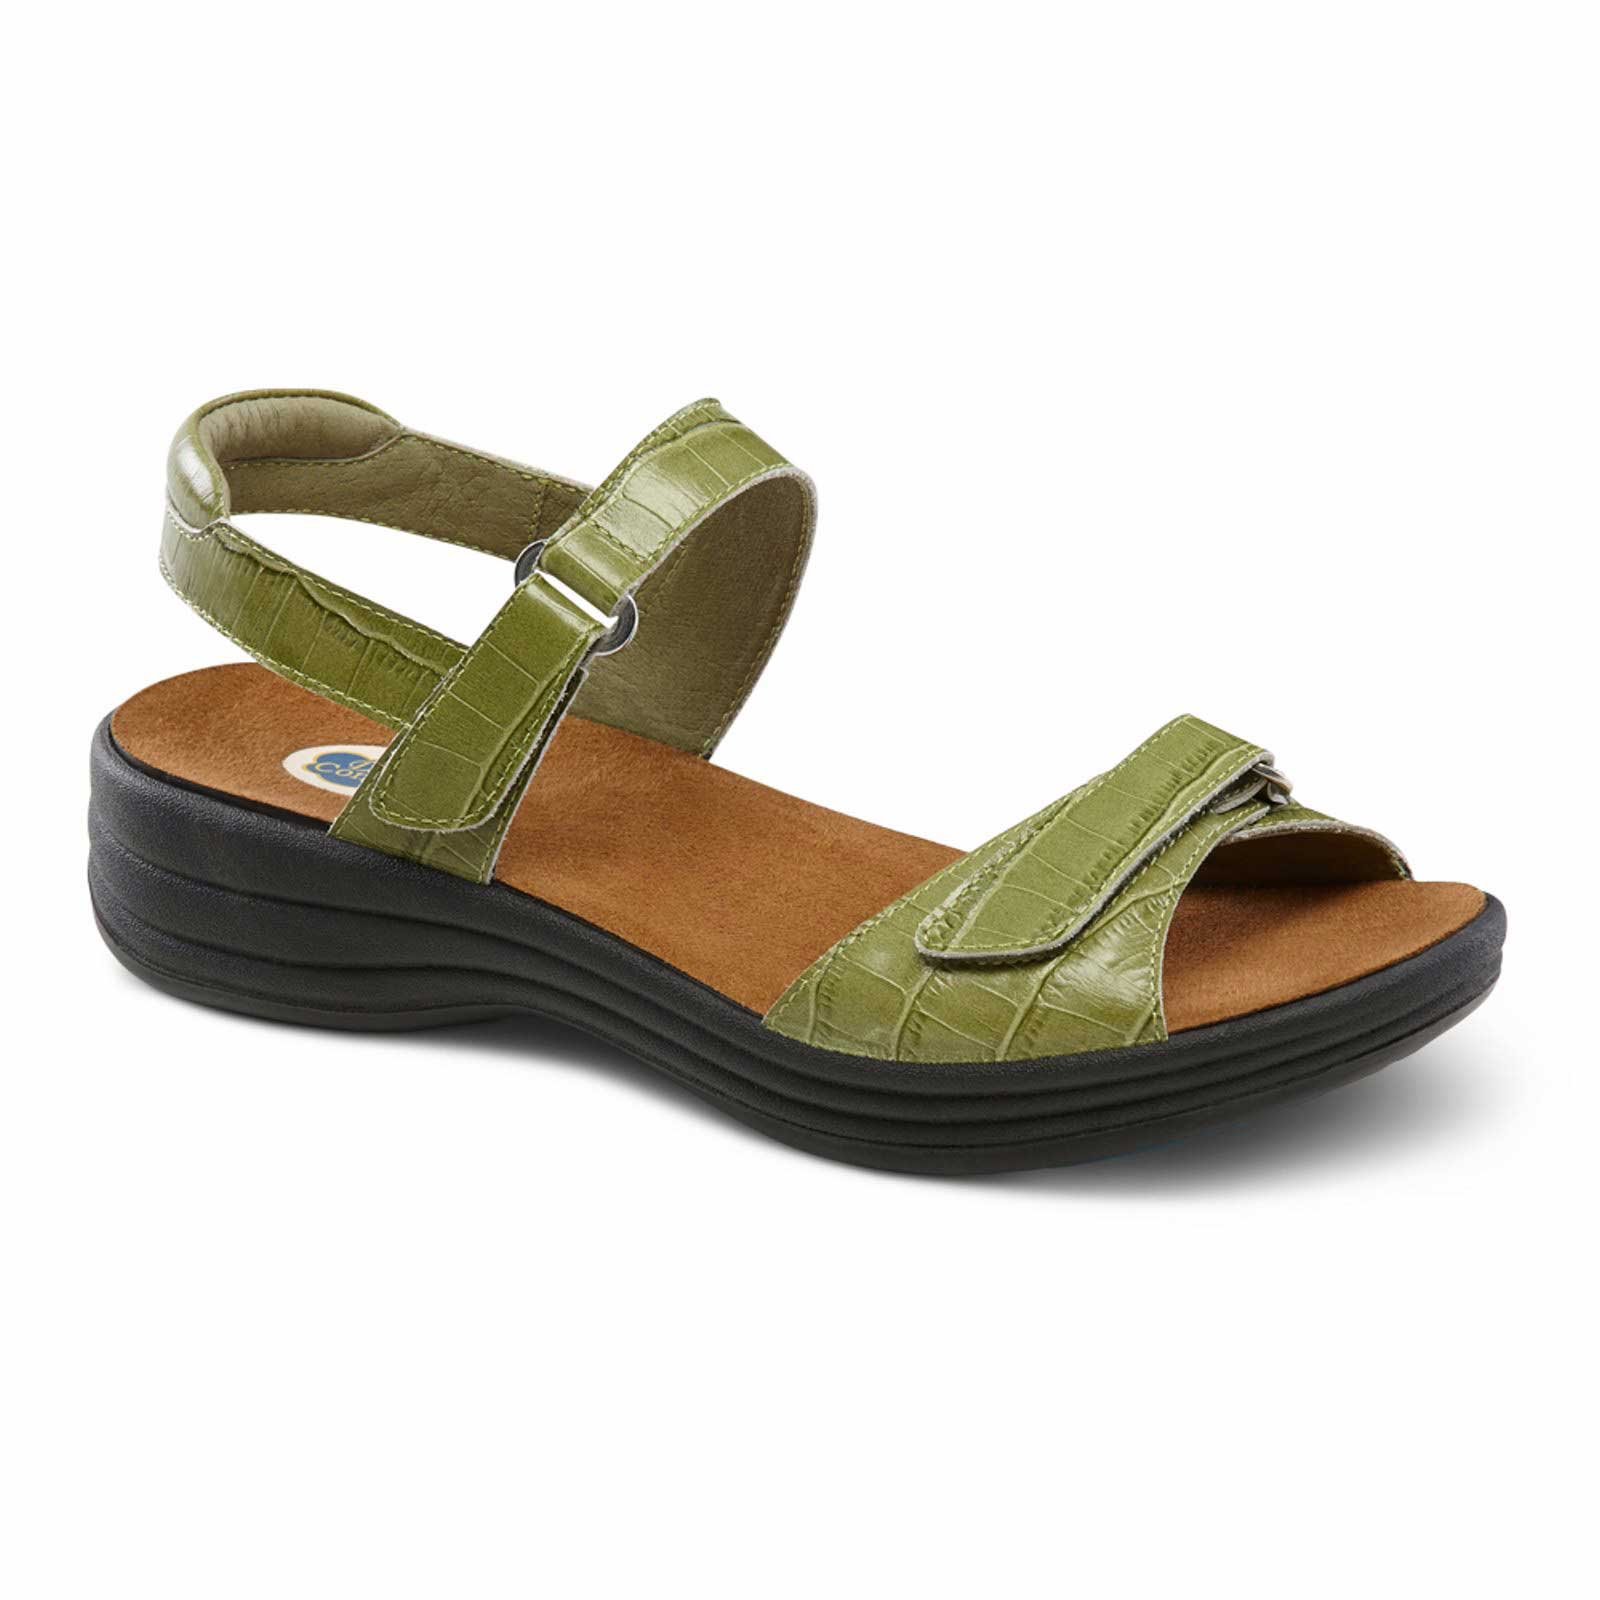 Dr. Comfort Shoes Rachel - Women's Sandal - Open Comfort Collection with Removable Footbeds for Orthotics - Medium (B) - Extra Wide (D) - Extra Depth